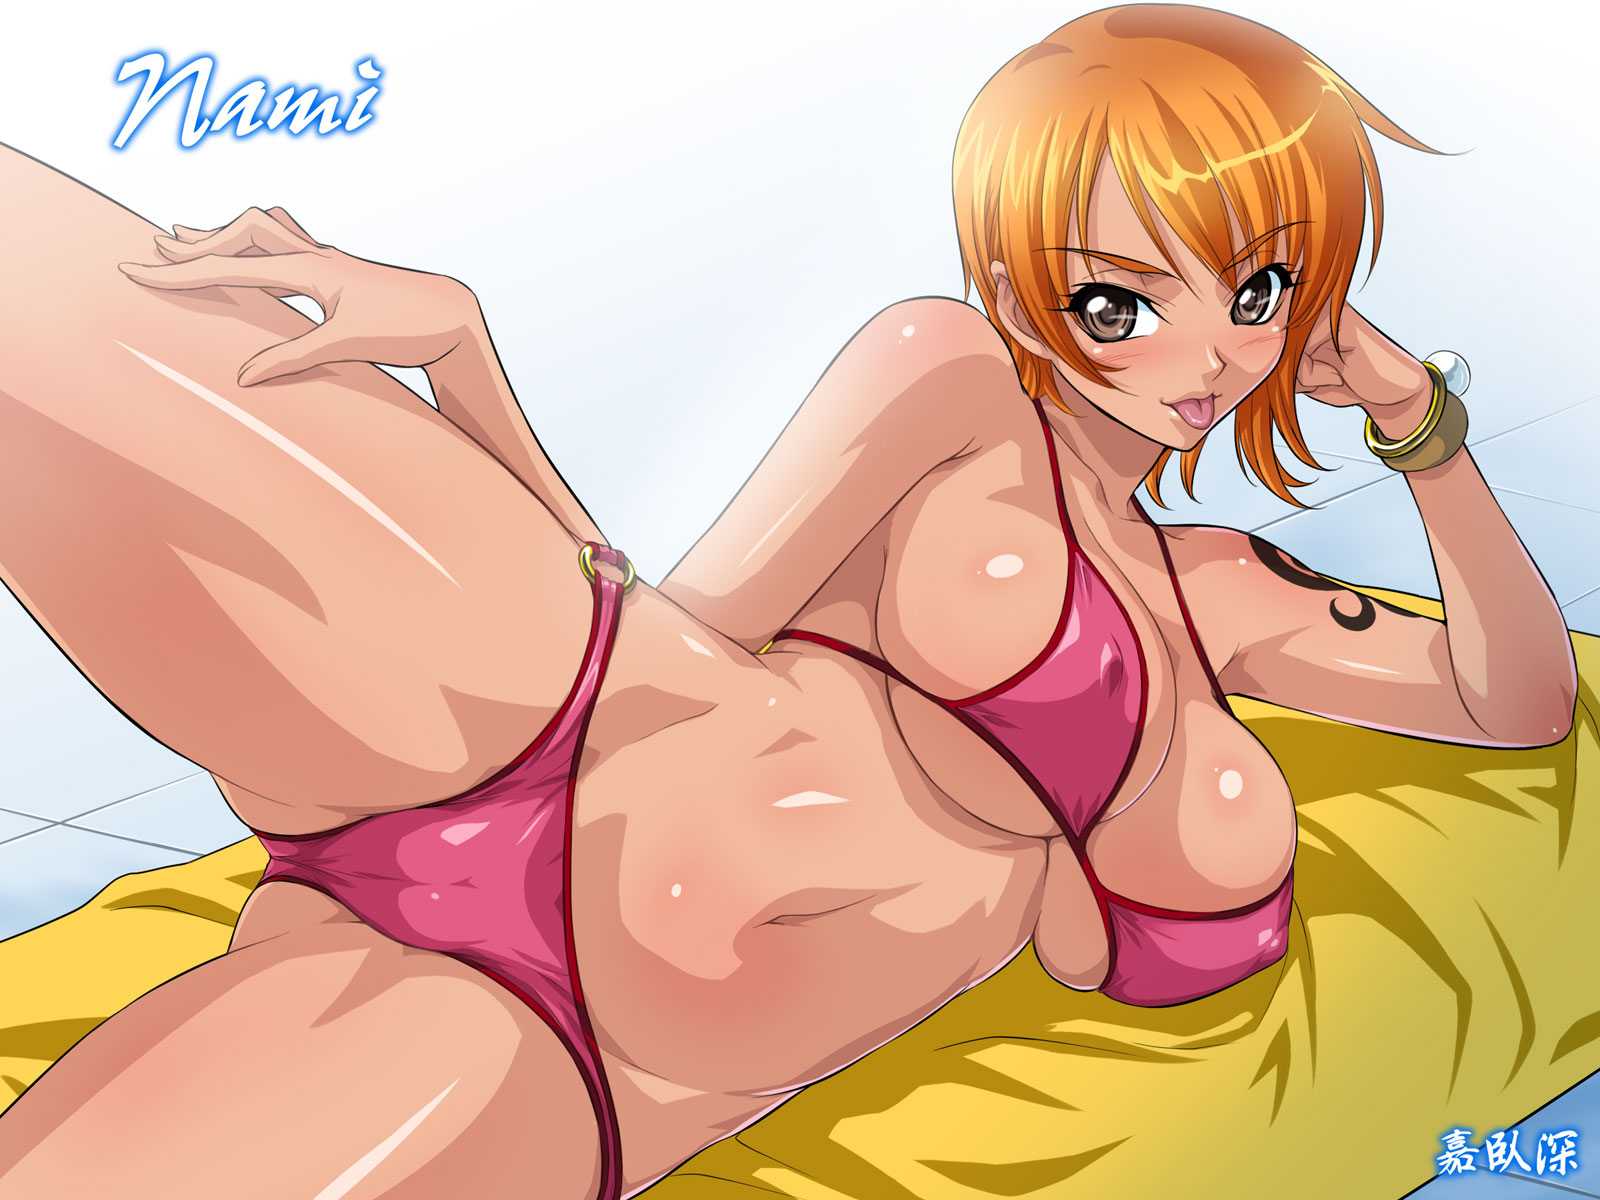 Sex onepiece anh